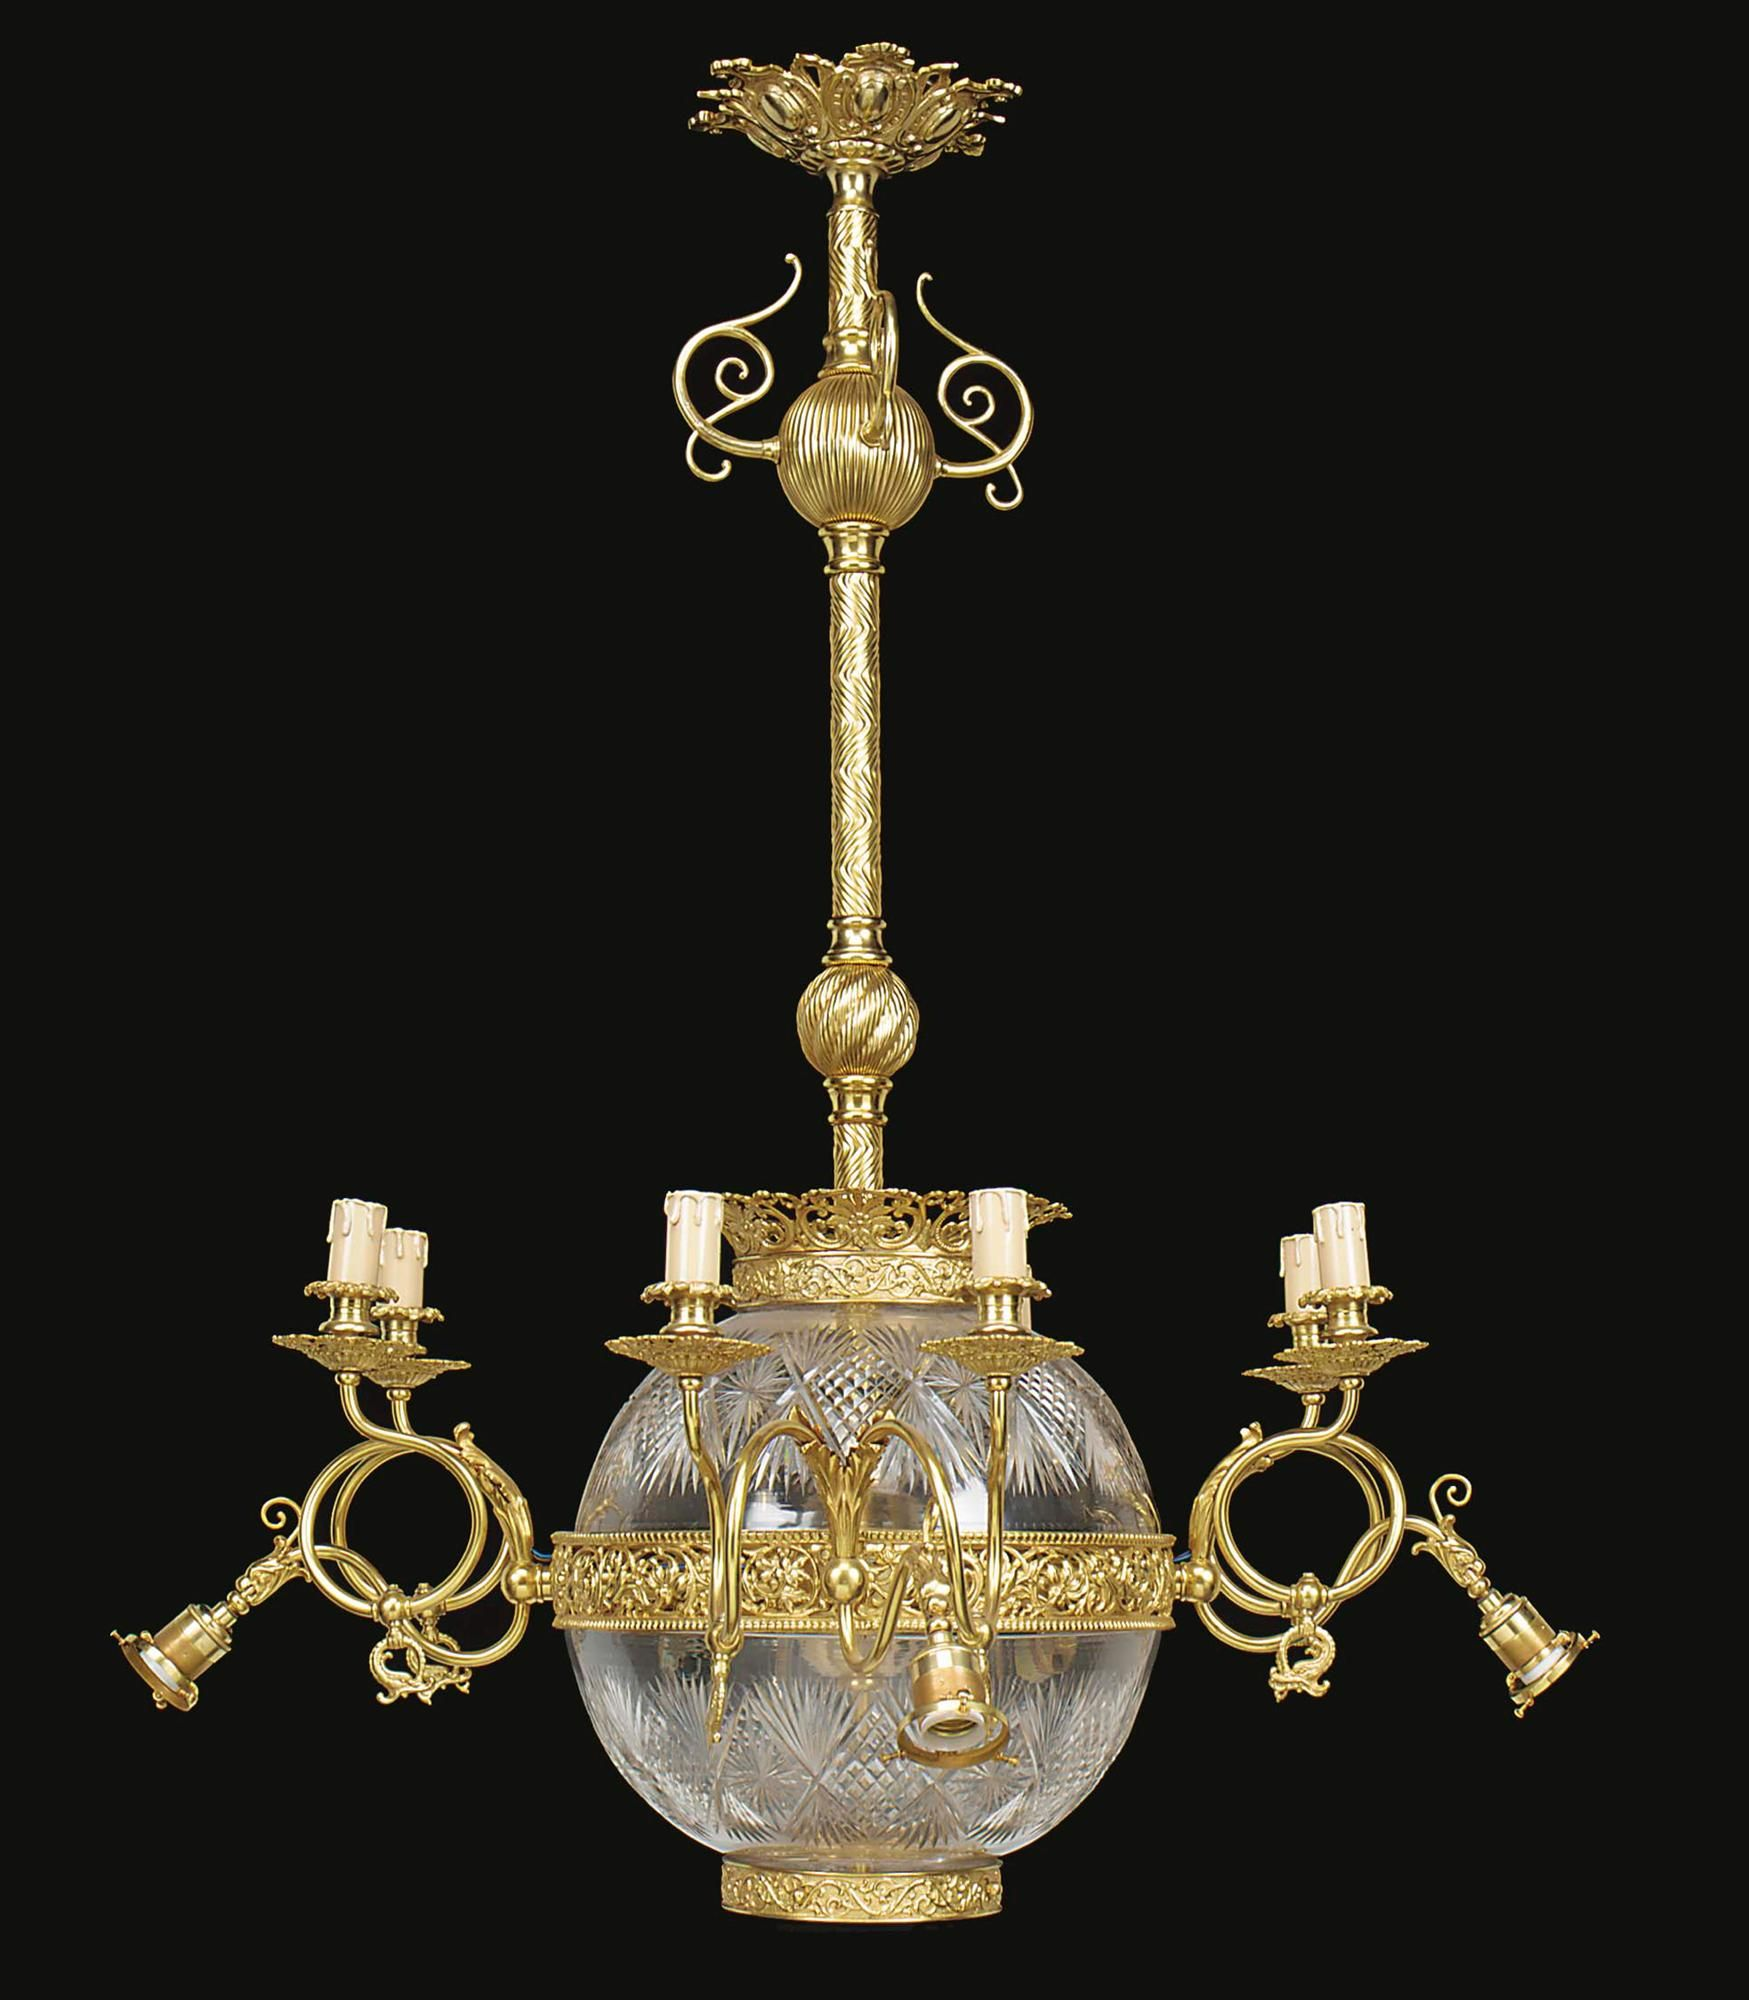 A Fine Gilt Bronze and Cut Glass Twelve Light Rococo Style